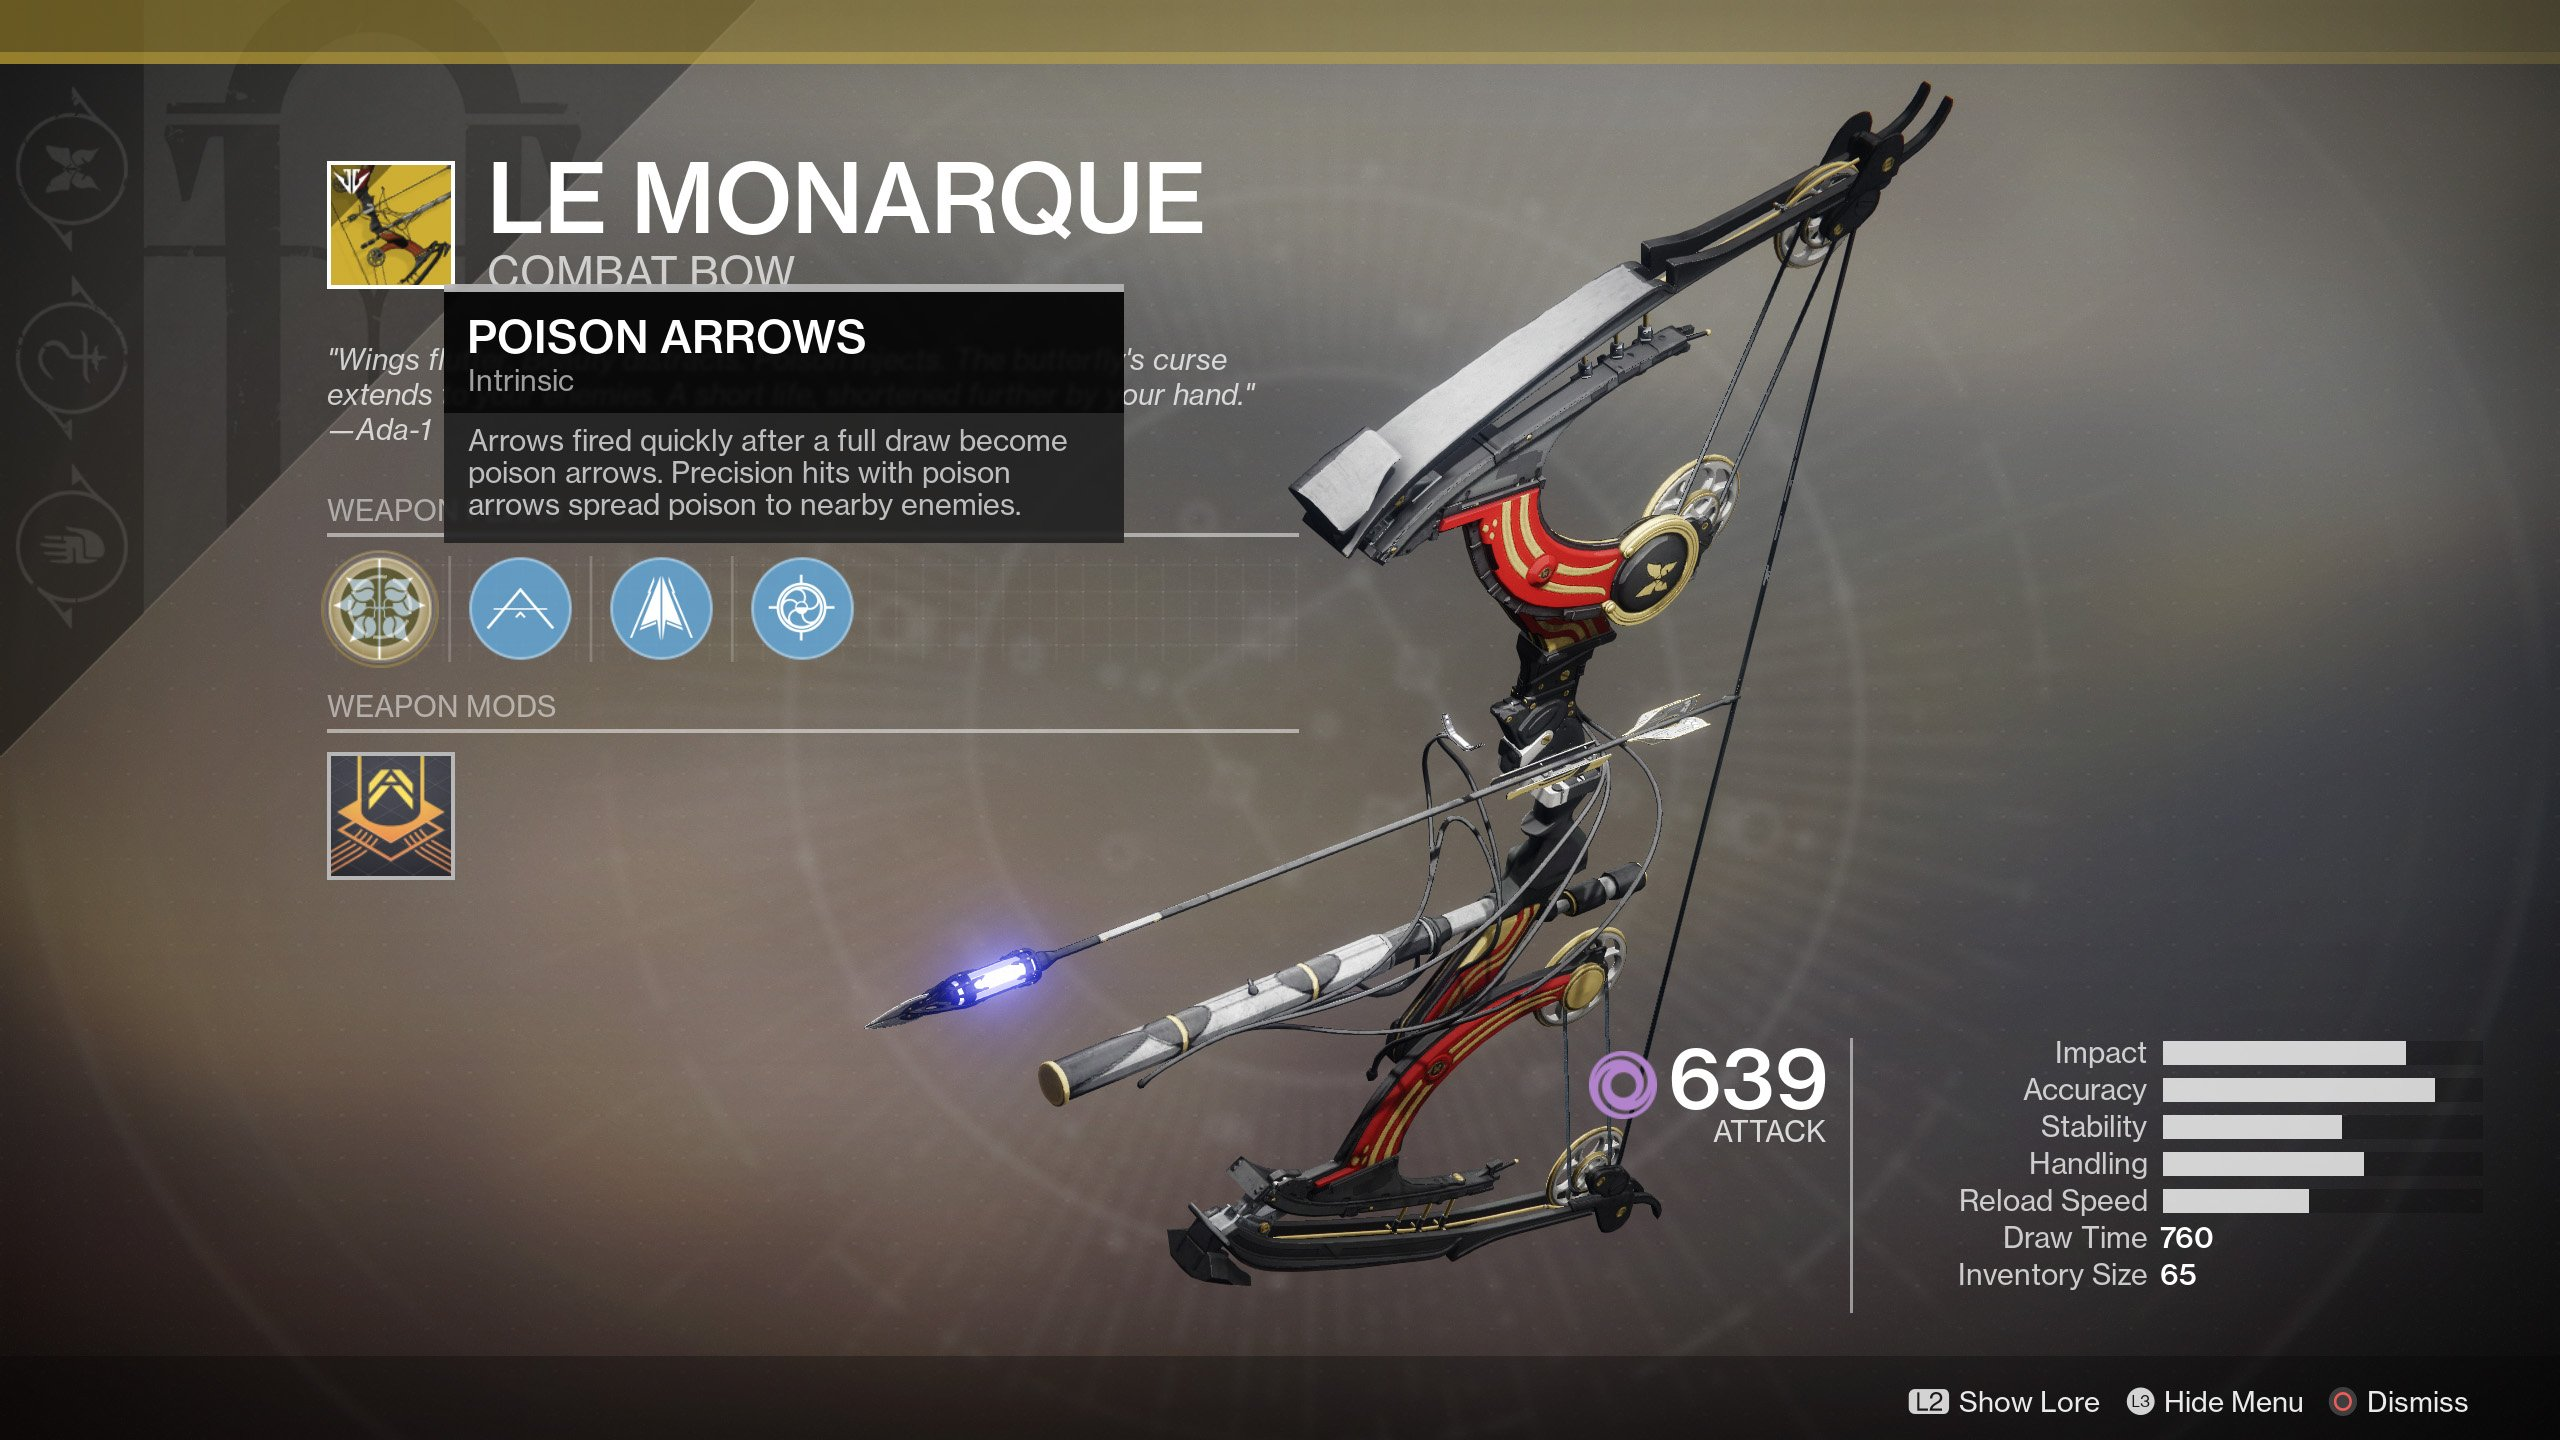 How to Get Le Monarque in Destiny 2